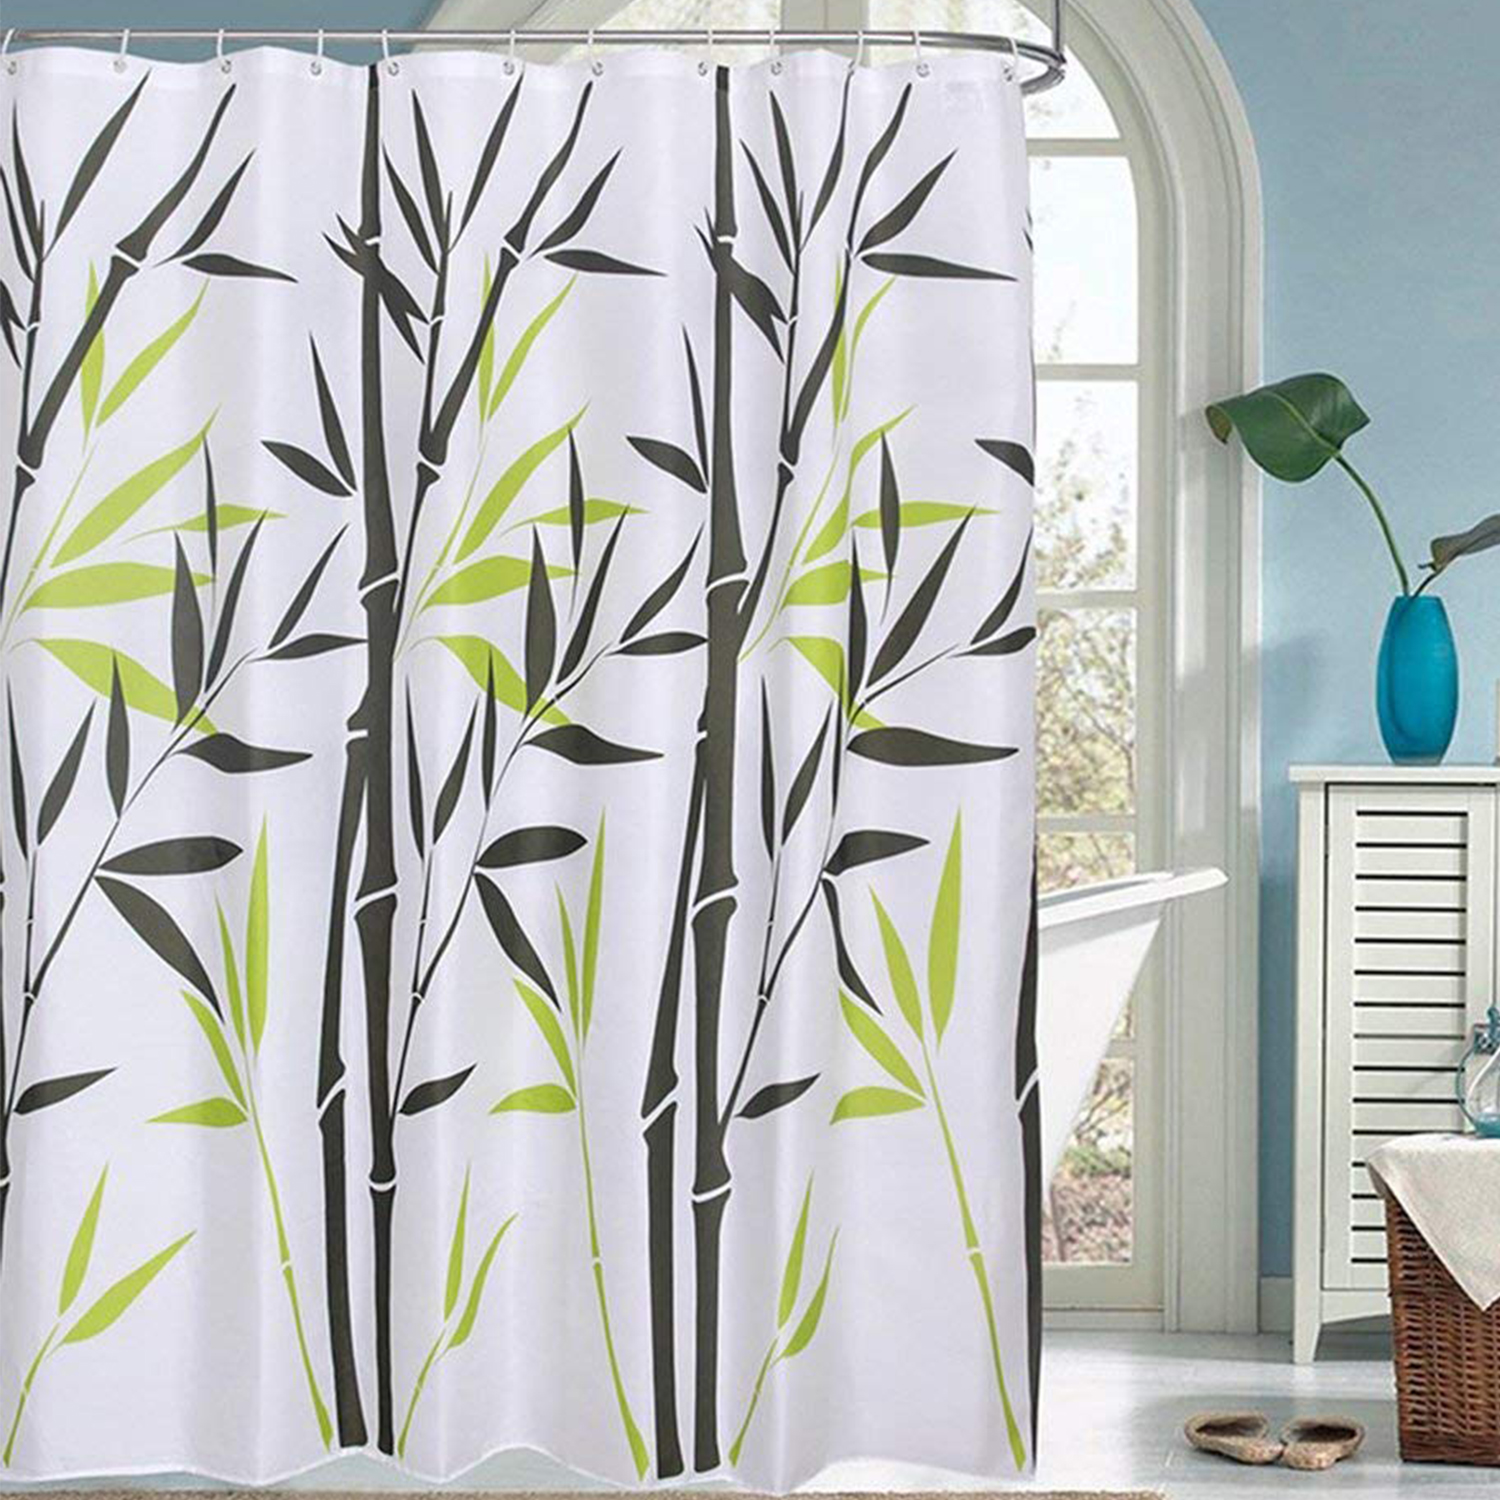 Details About Fabric Shower Curtain Waterproof Polyester Green Bamboo Bathroom Design 12 Hooks